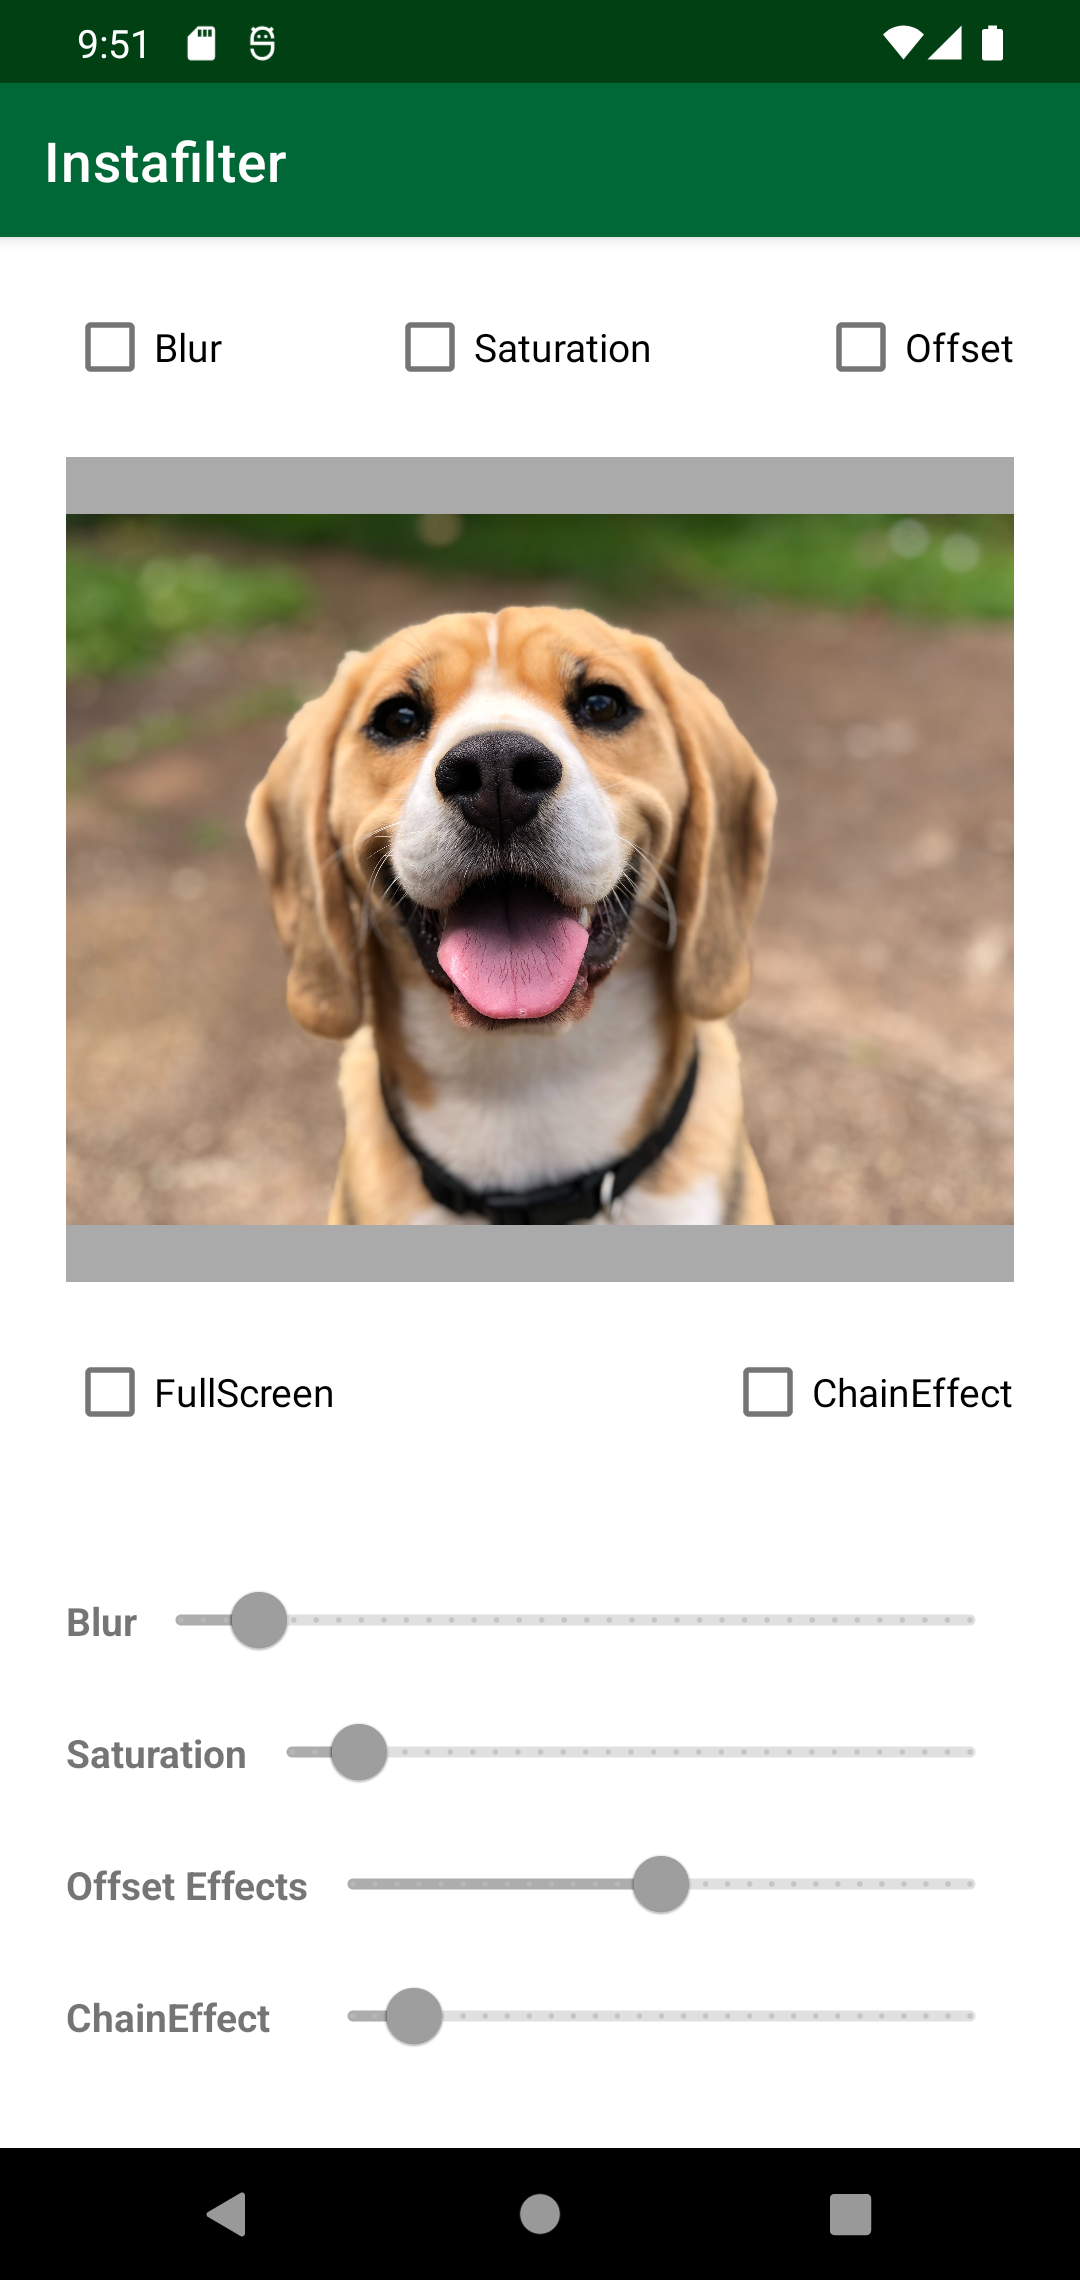 Instafilter app with dog photo and various checkboxes and slider bars